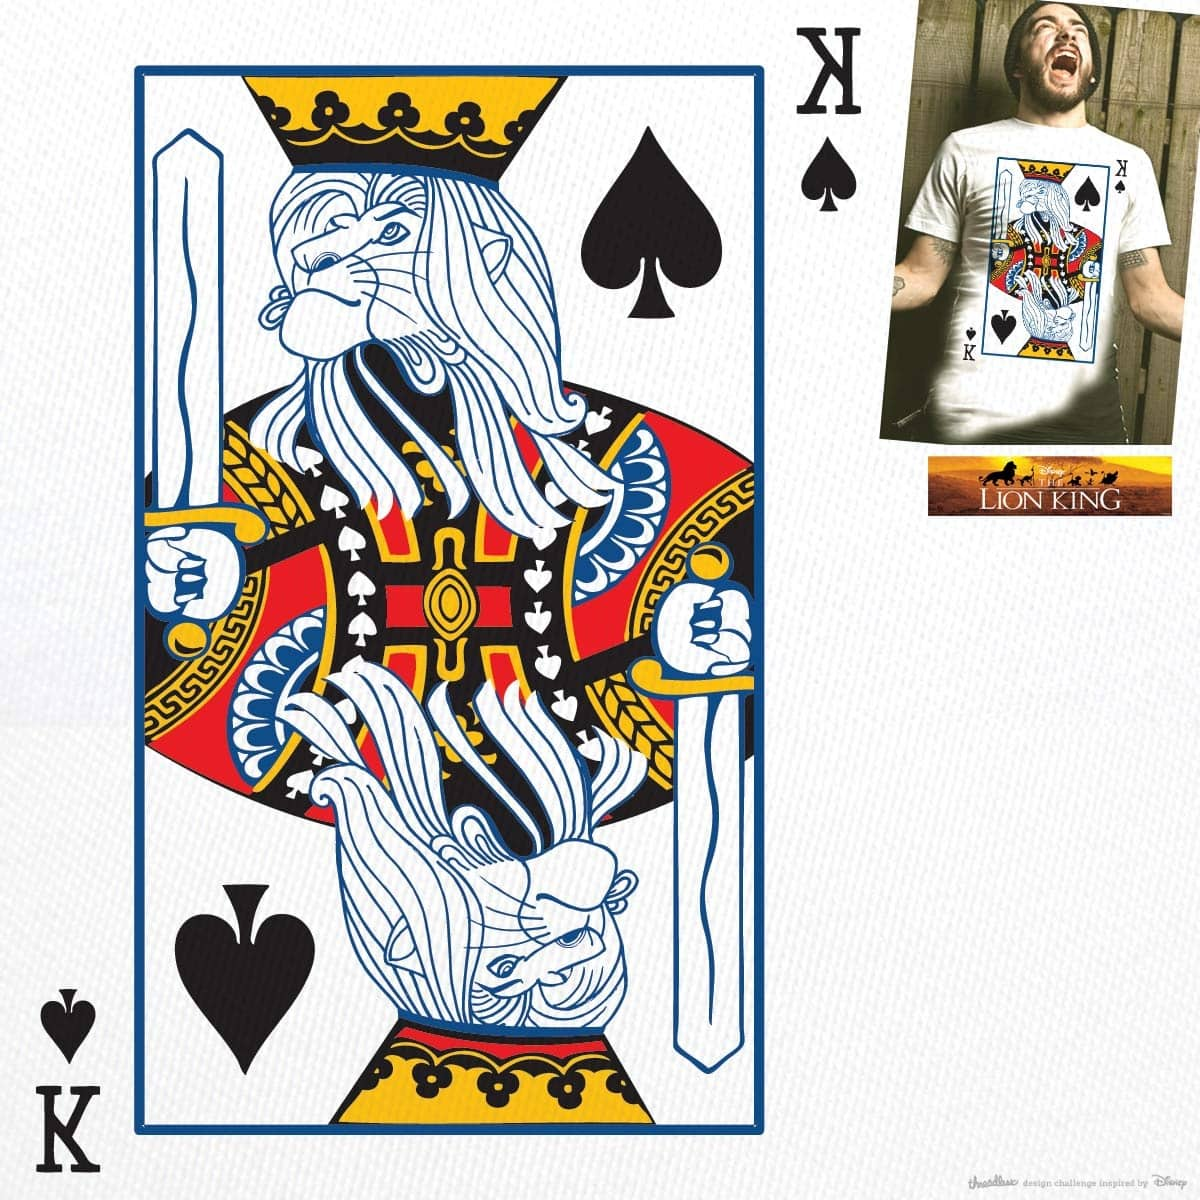 The King by Jemae on Threadless